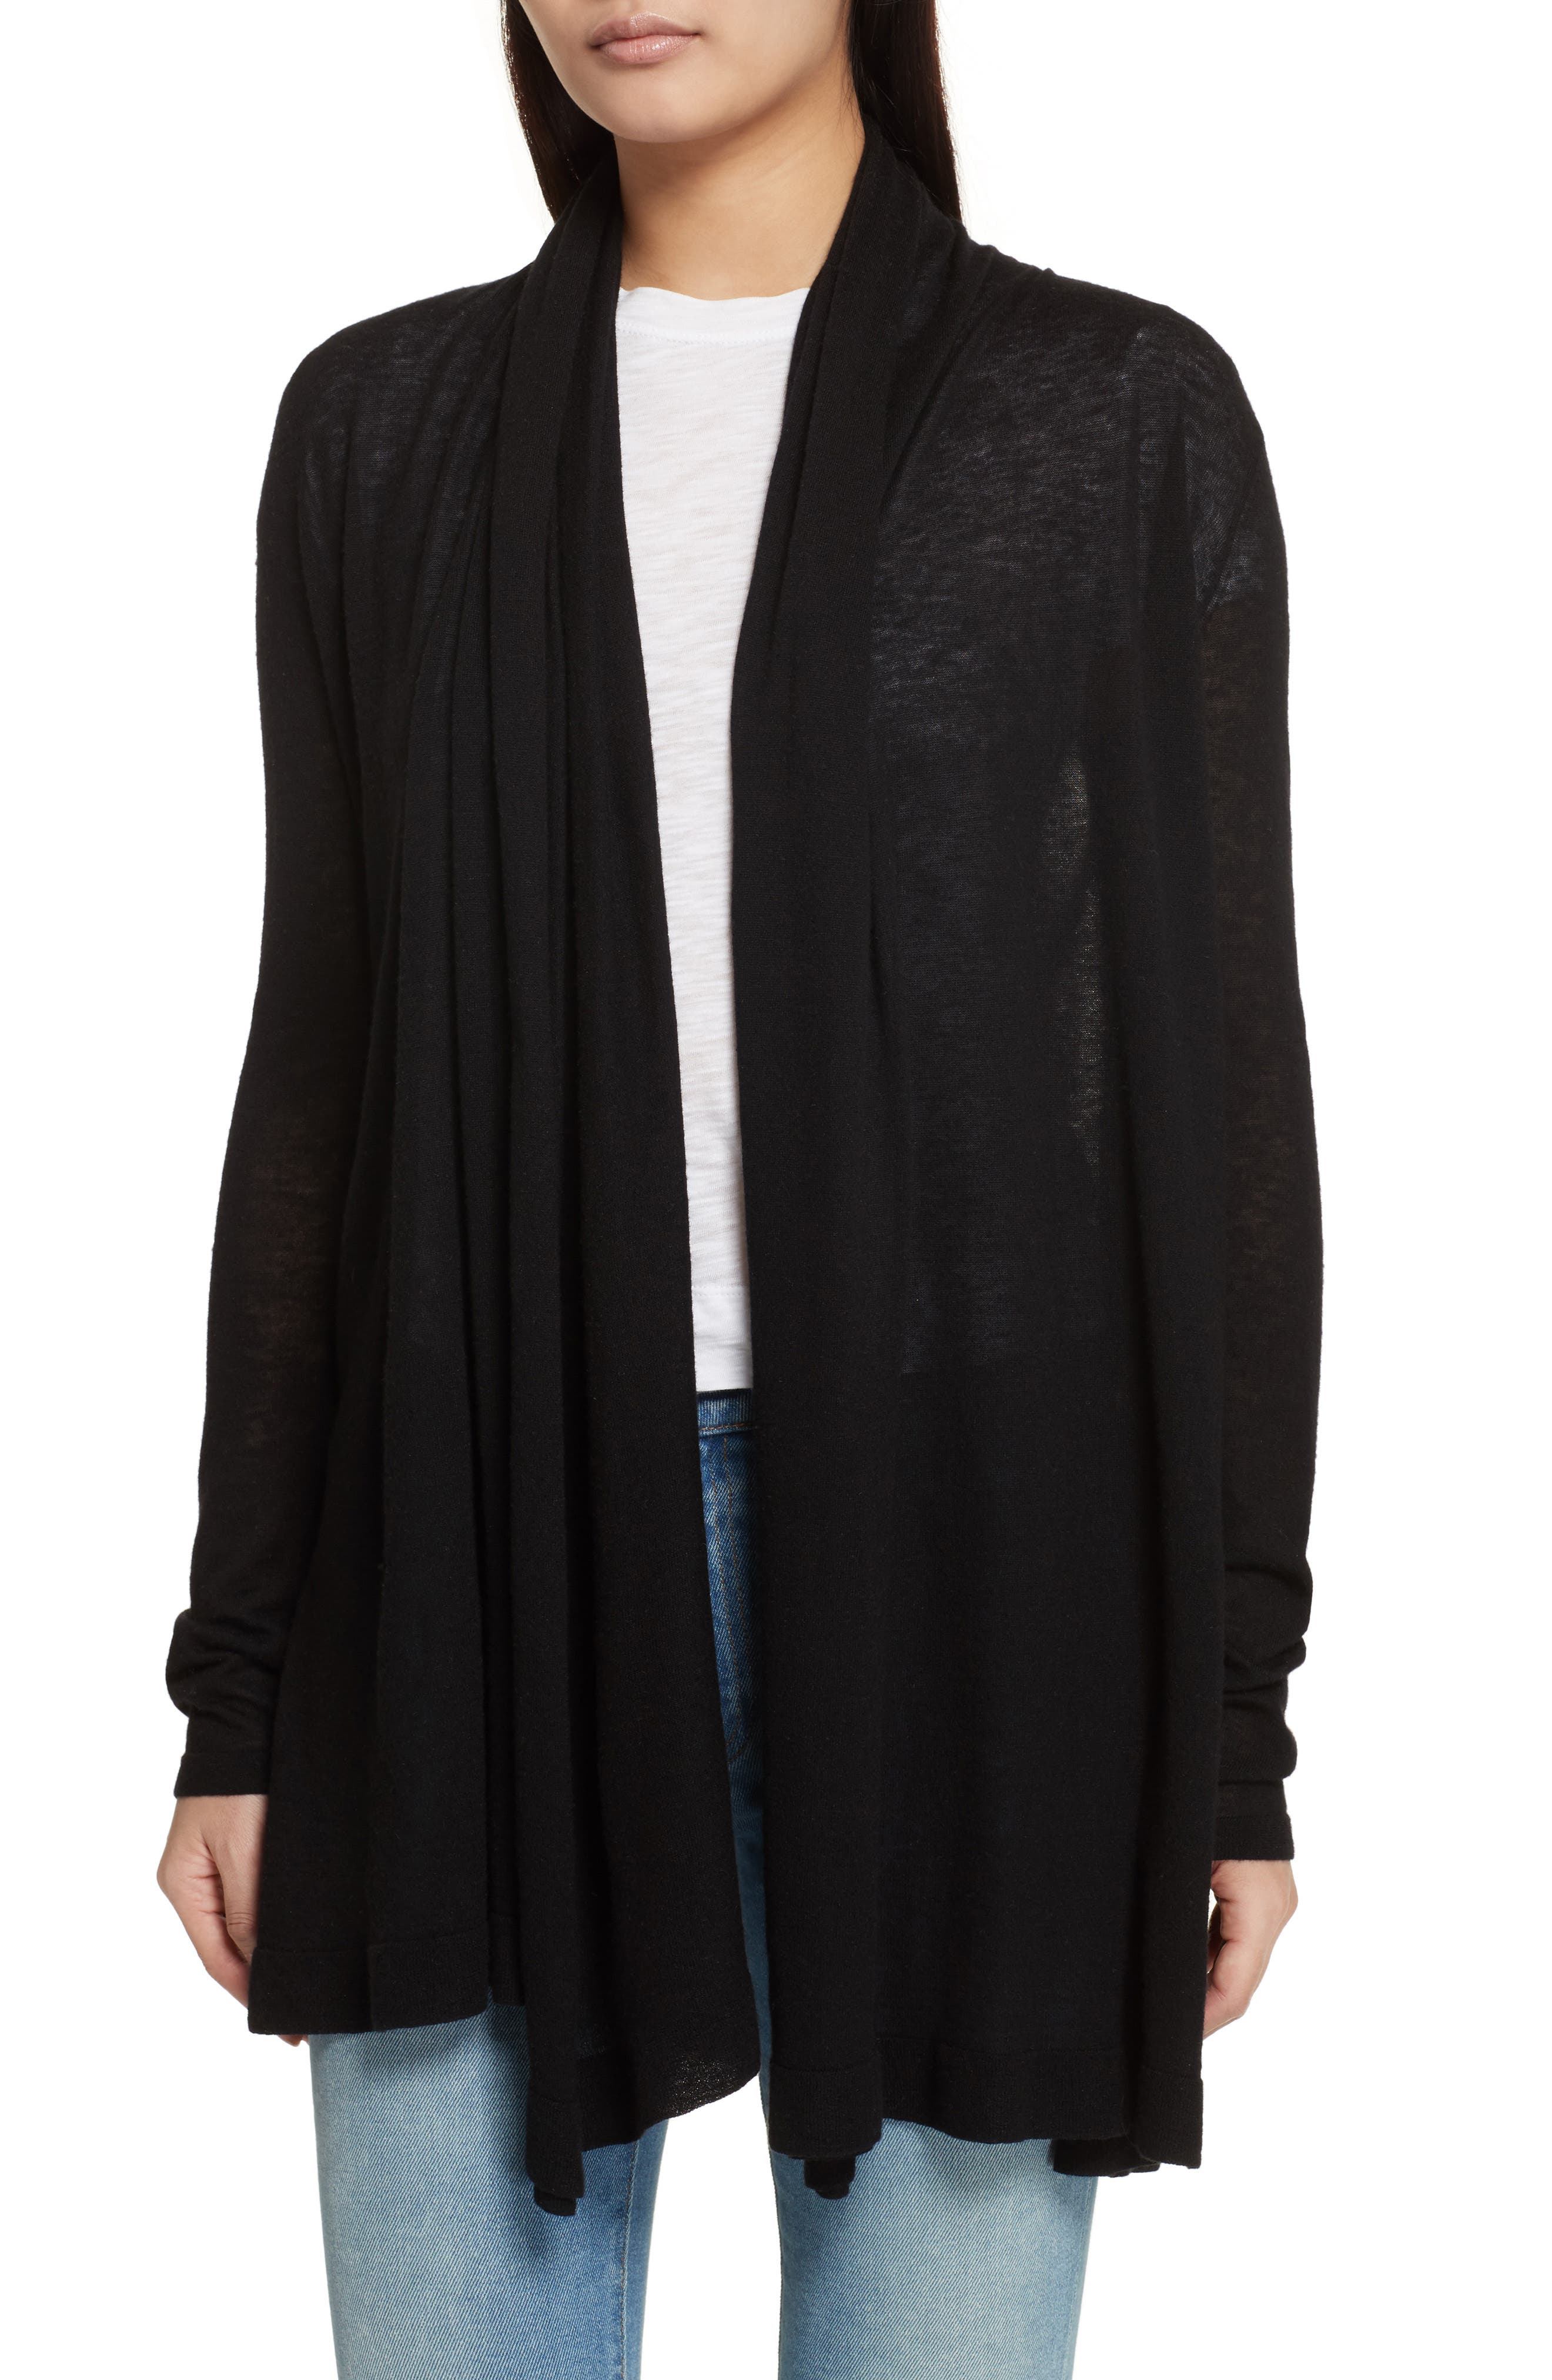 THEORY Featherweight Cashmere Cardigan, Main, color, 001